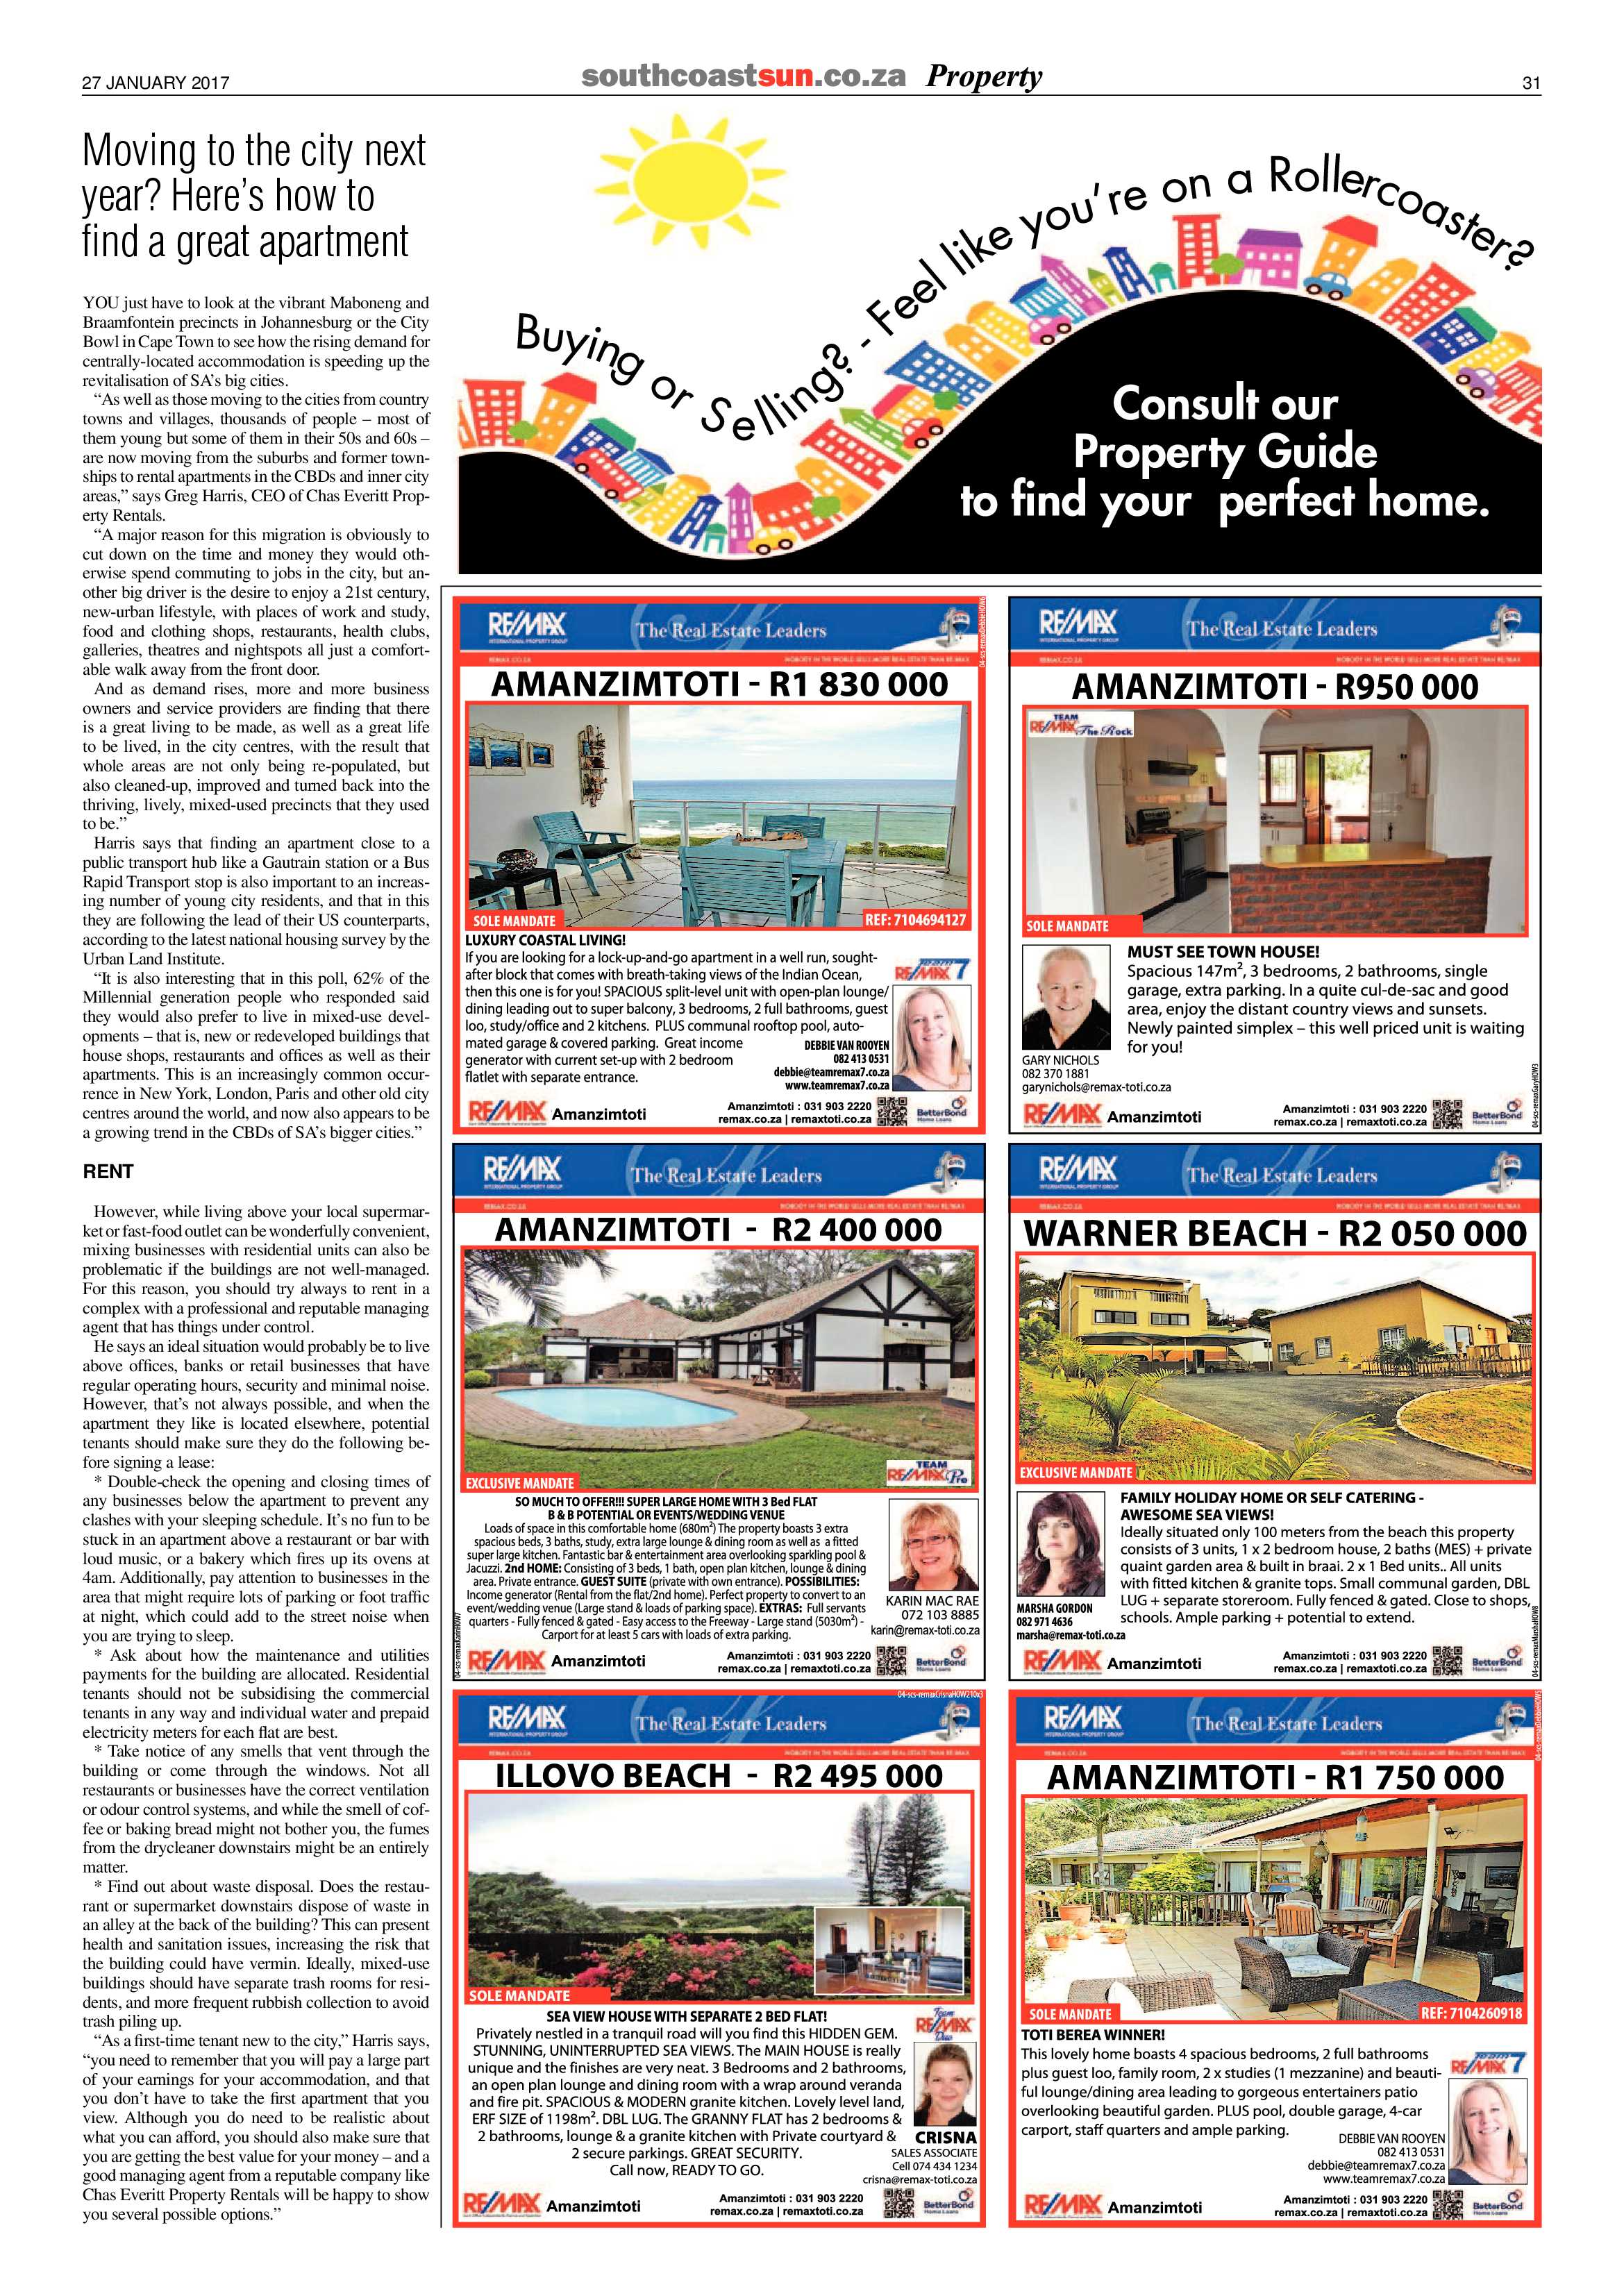 27-january-2017-epapers-page-31